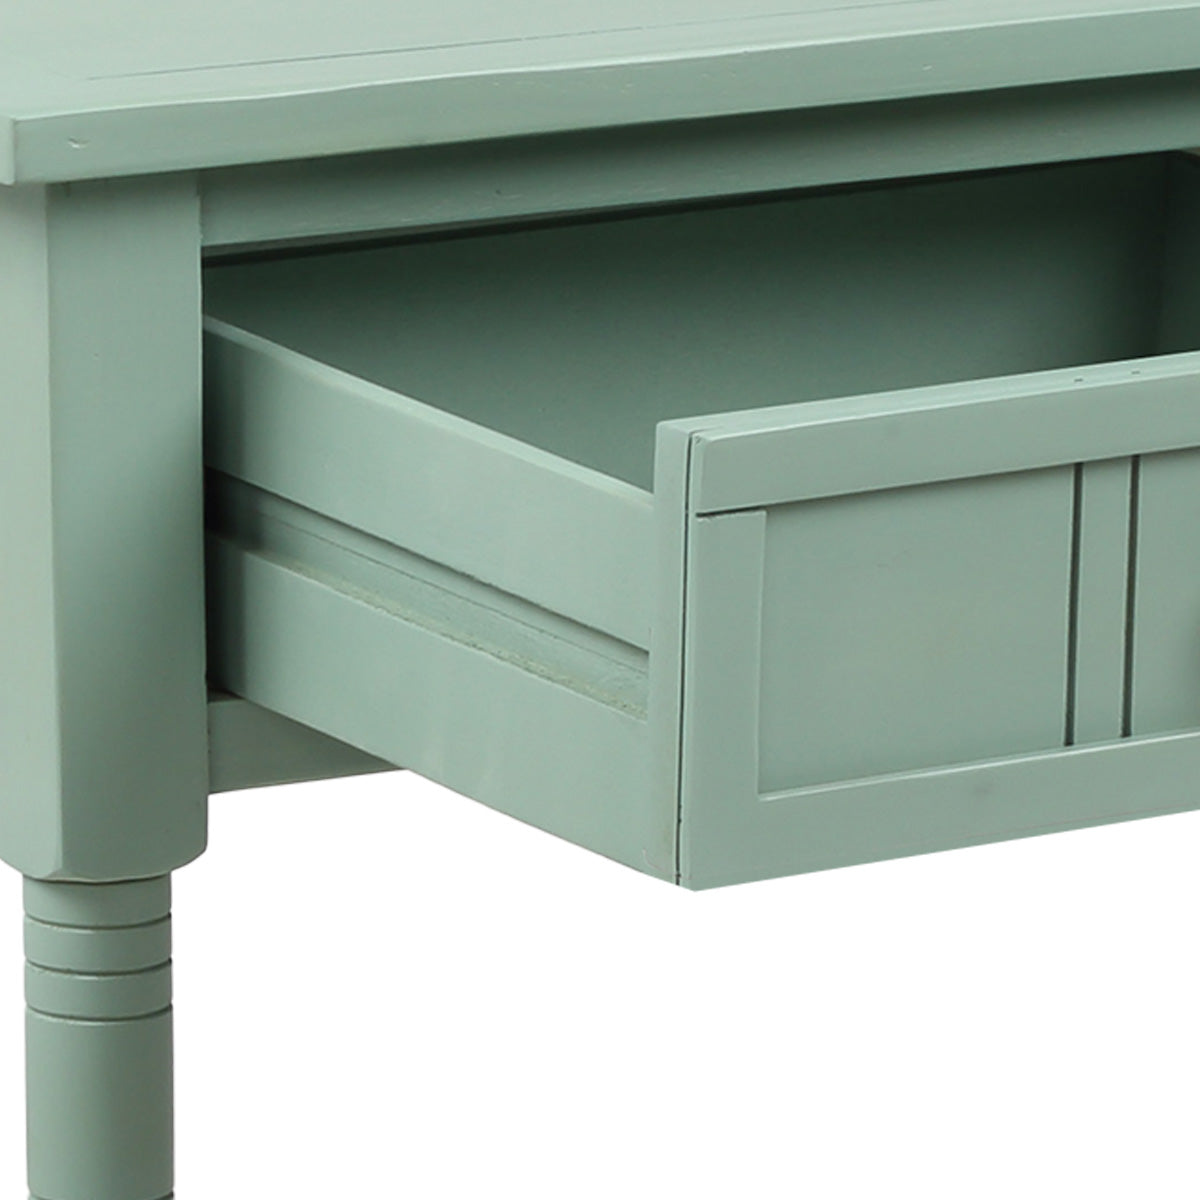 Console Table Traditional Design with Two Drawers and Bottom Shelf Acacia Mangium